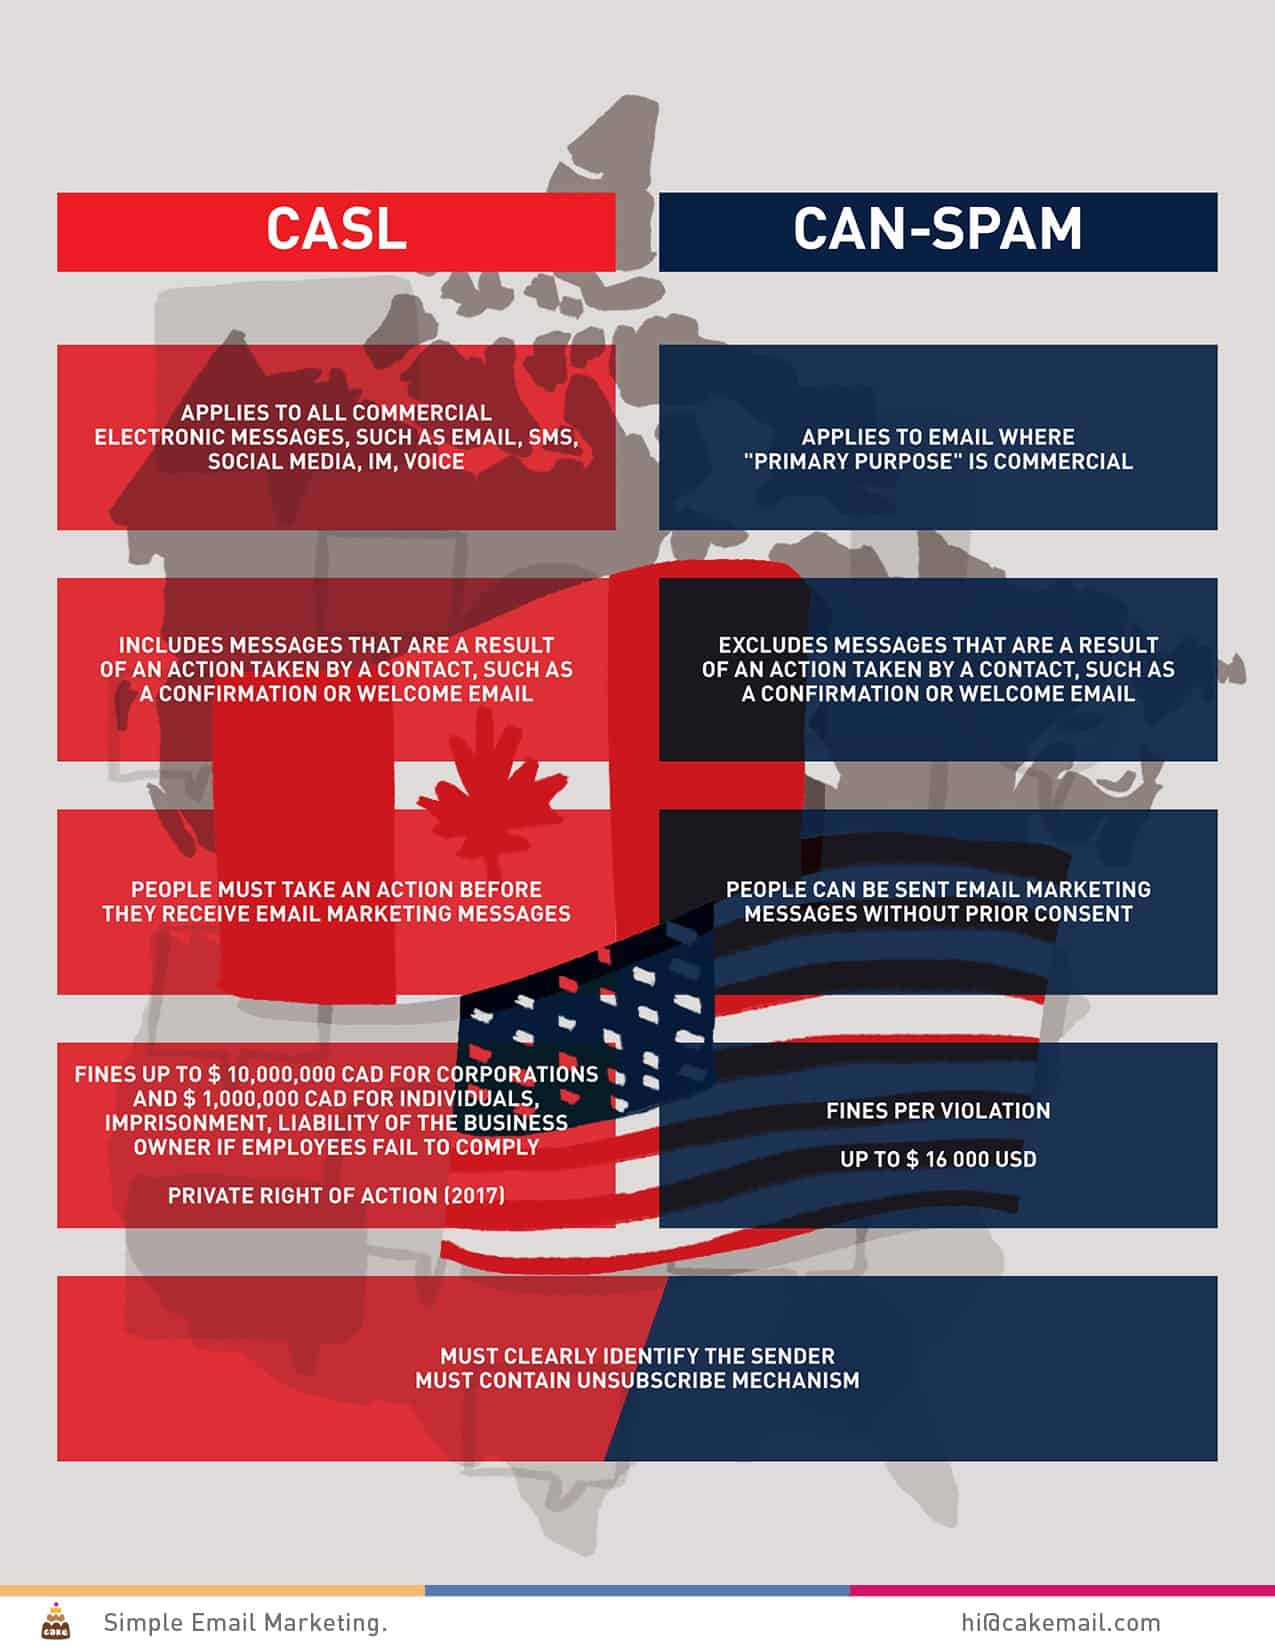 At-a-Glance: CASL vs CAN-SPAM